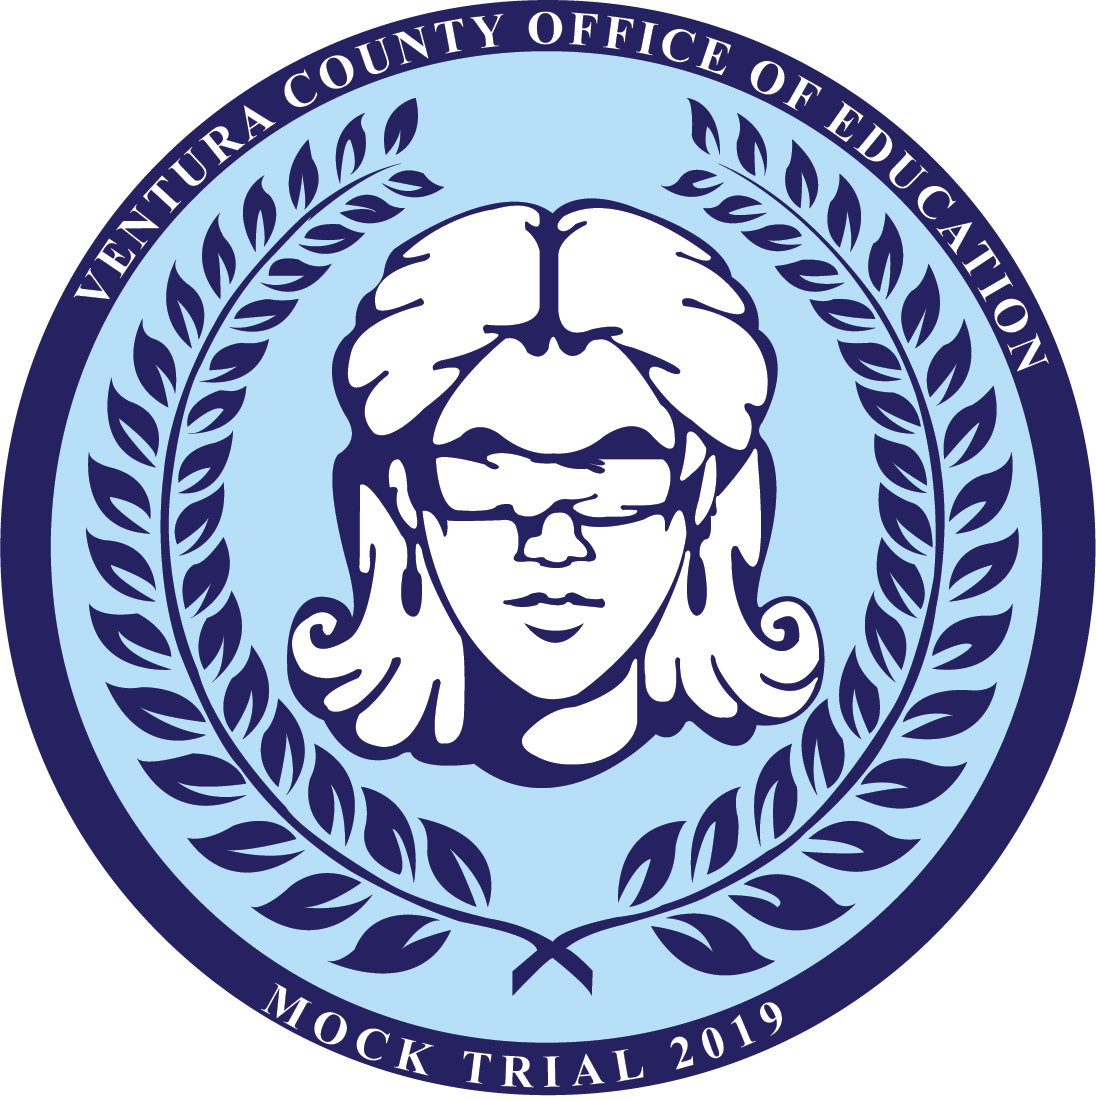 Four Remaining Teams to Face Off in Mock Trial Finals Feb. 28